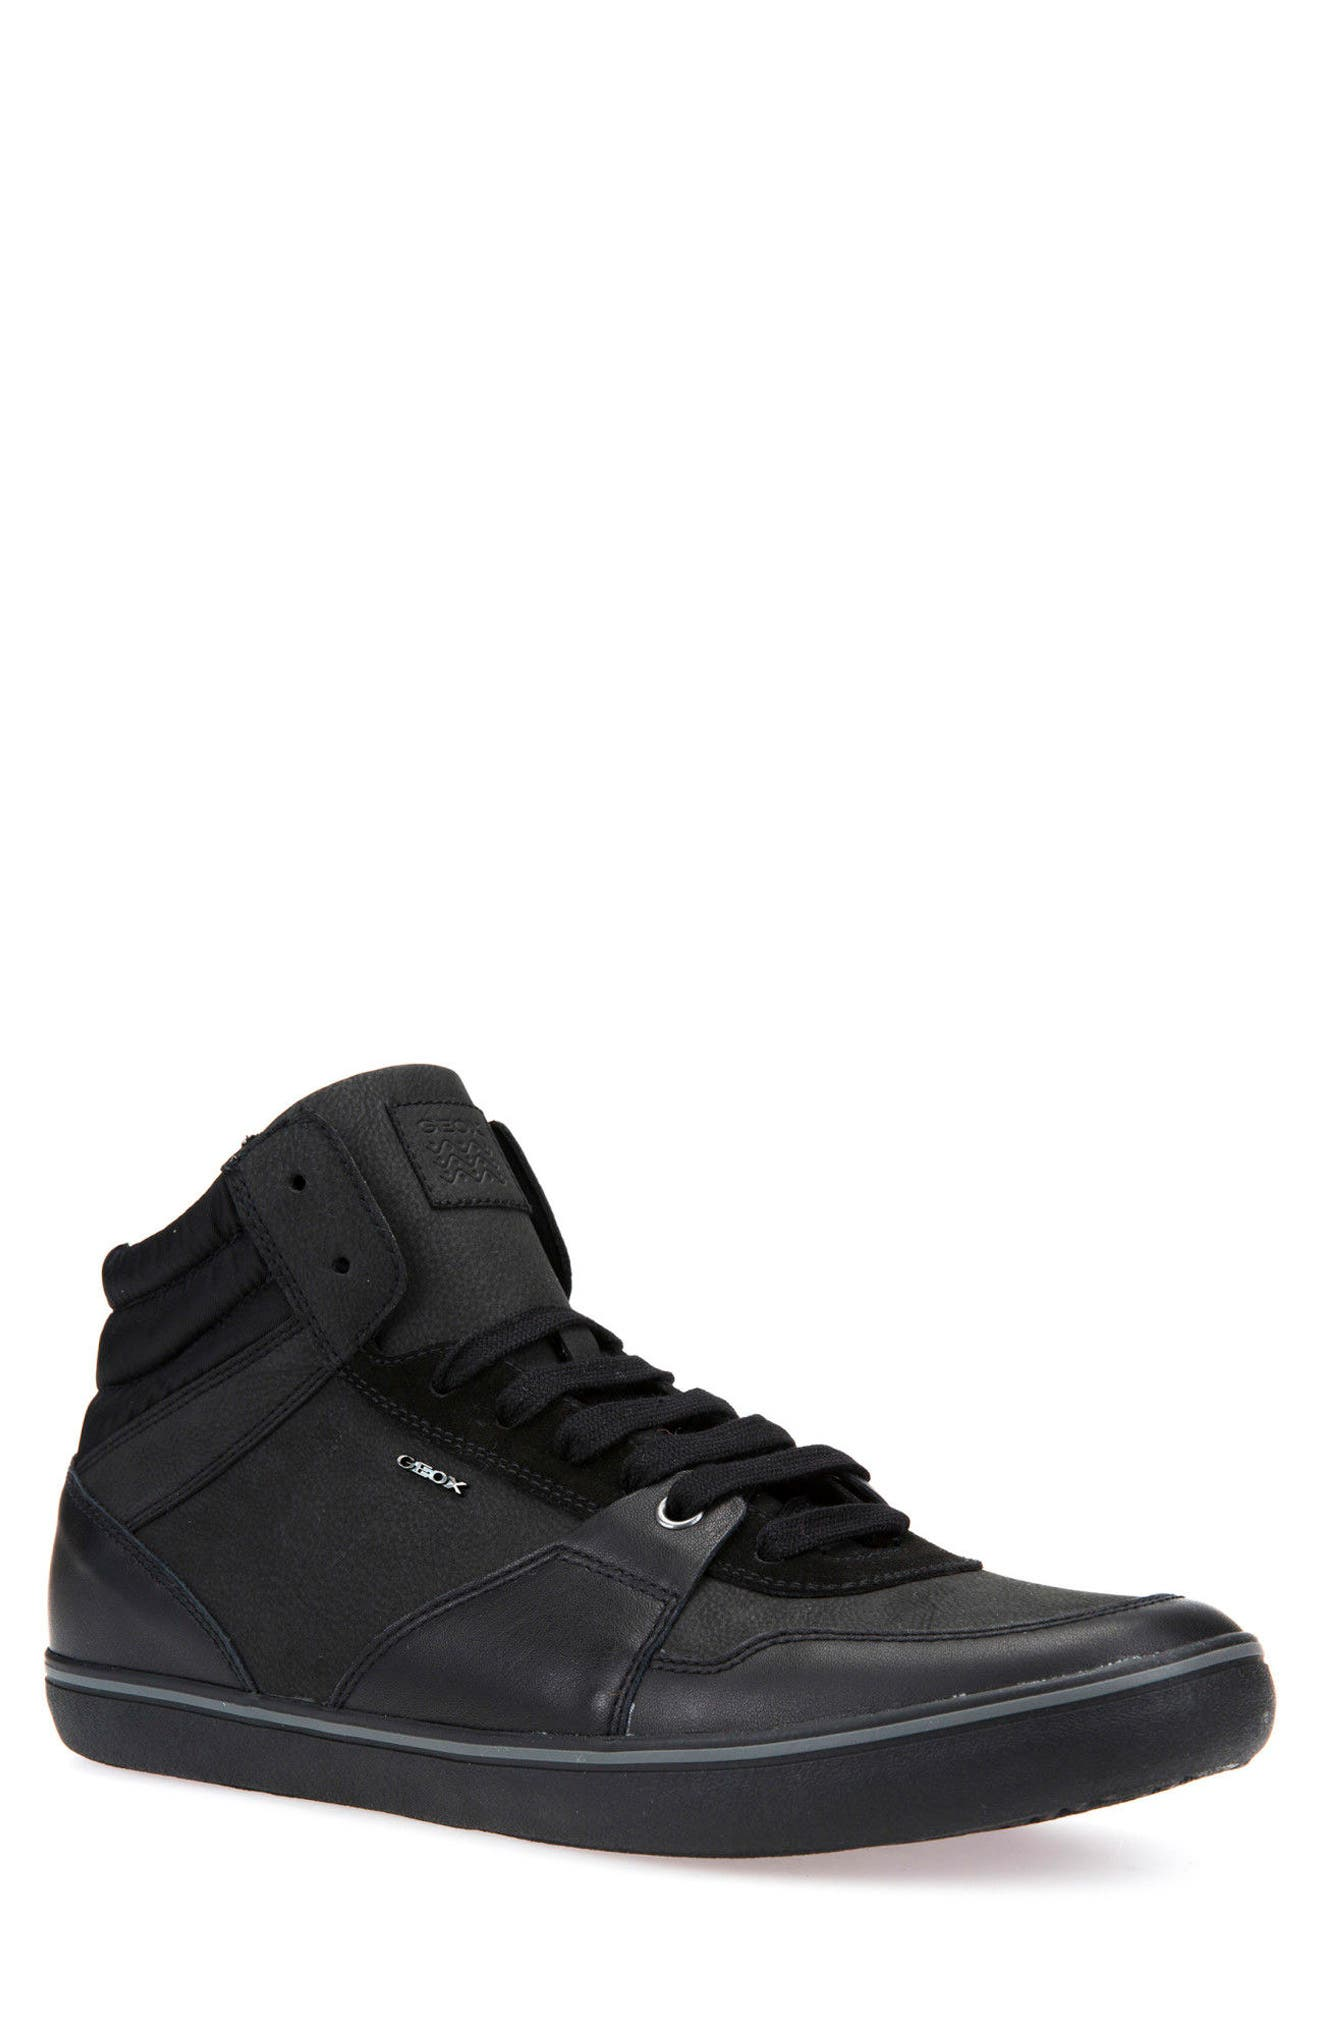 Box 31 High Top Sneaker,                         Main,                         color,